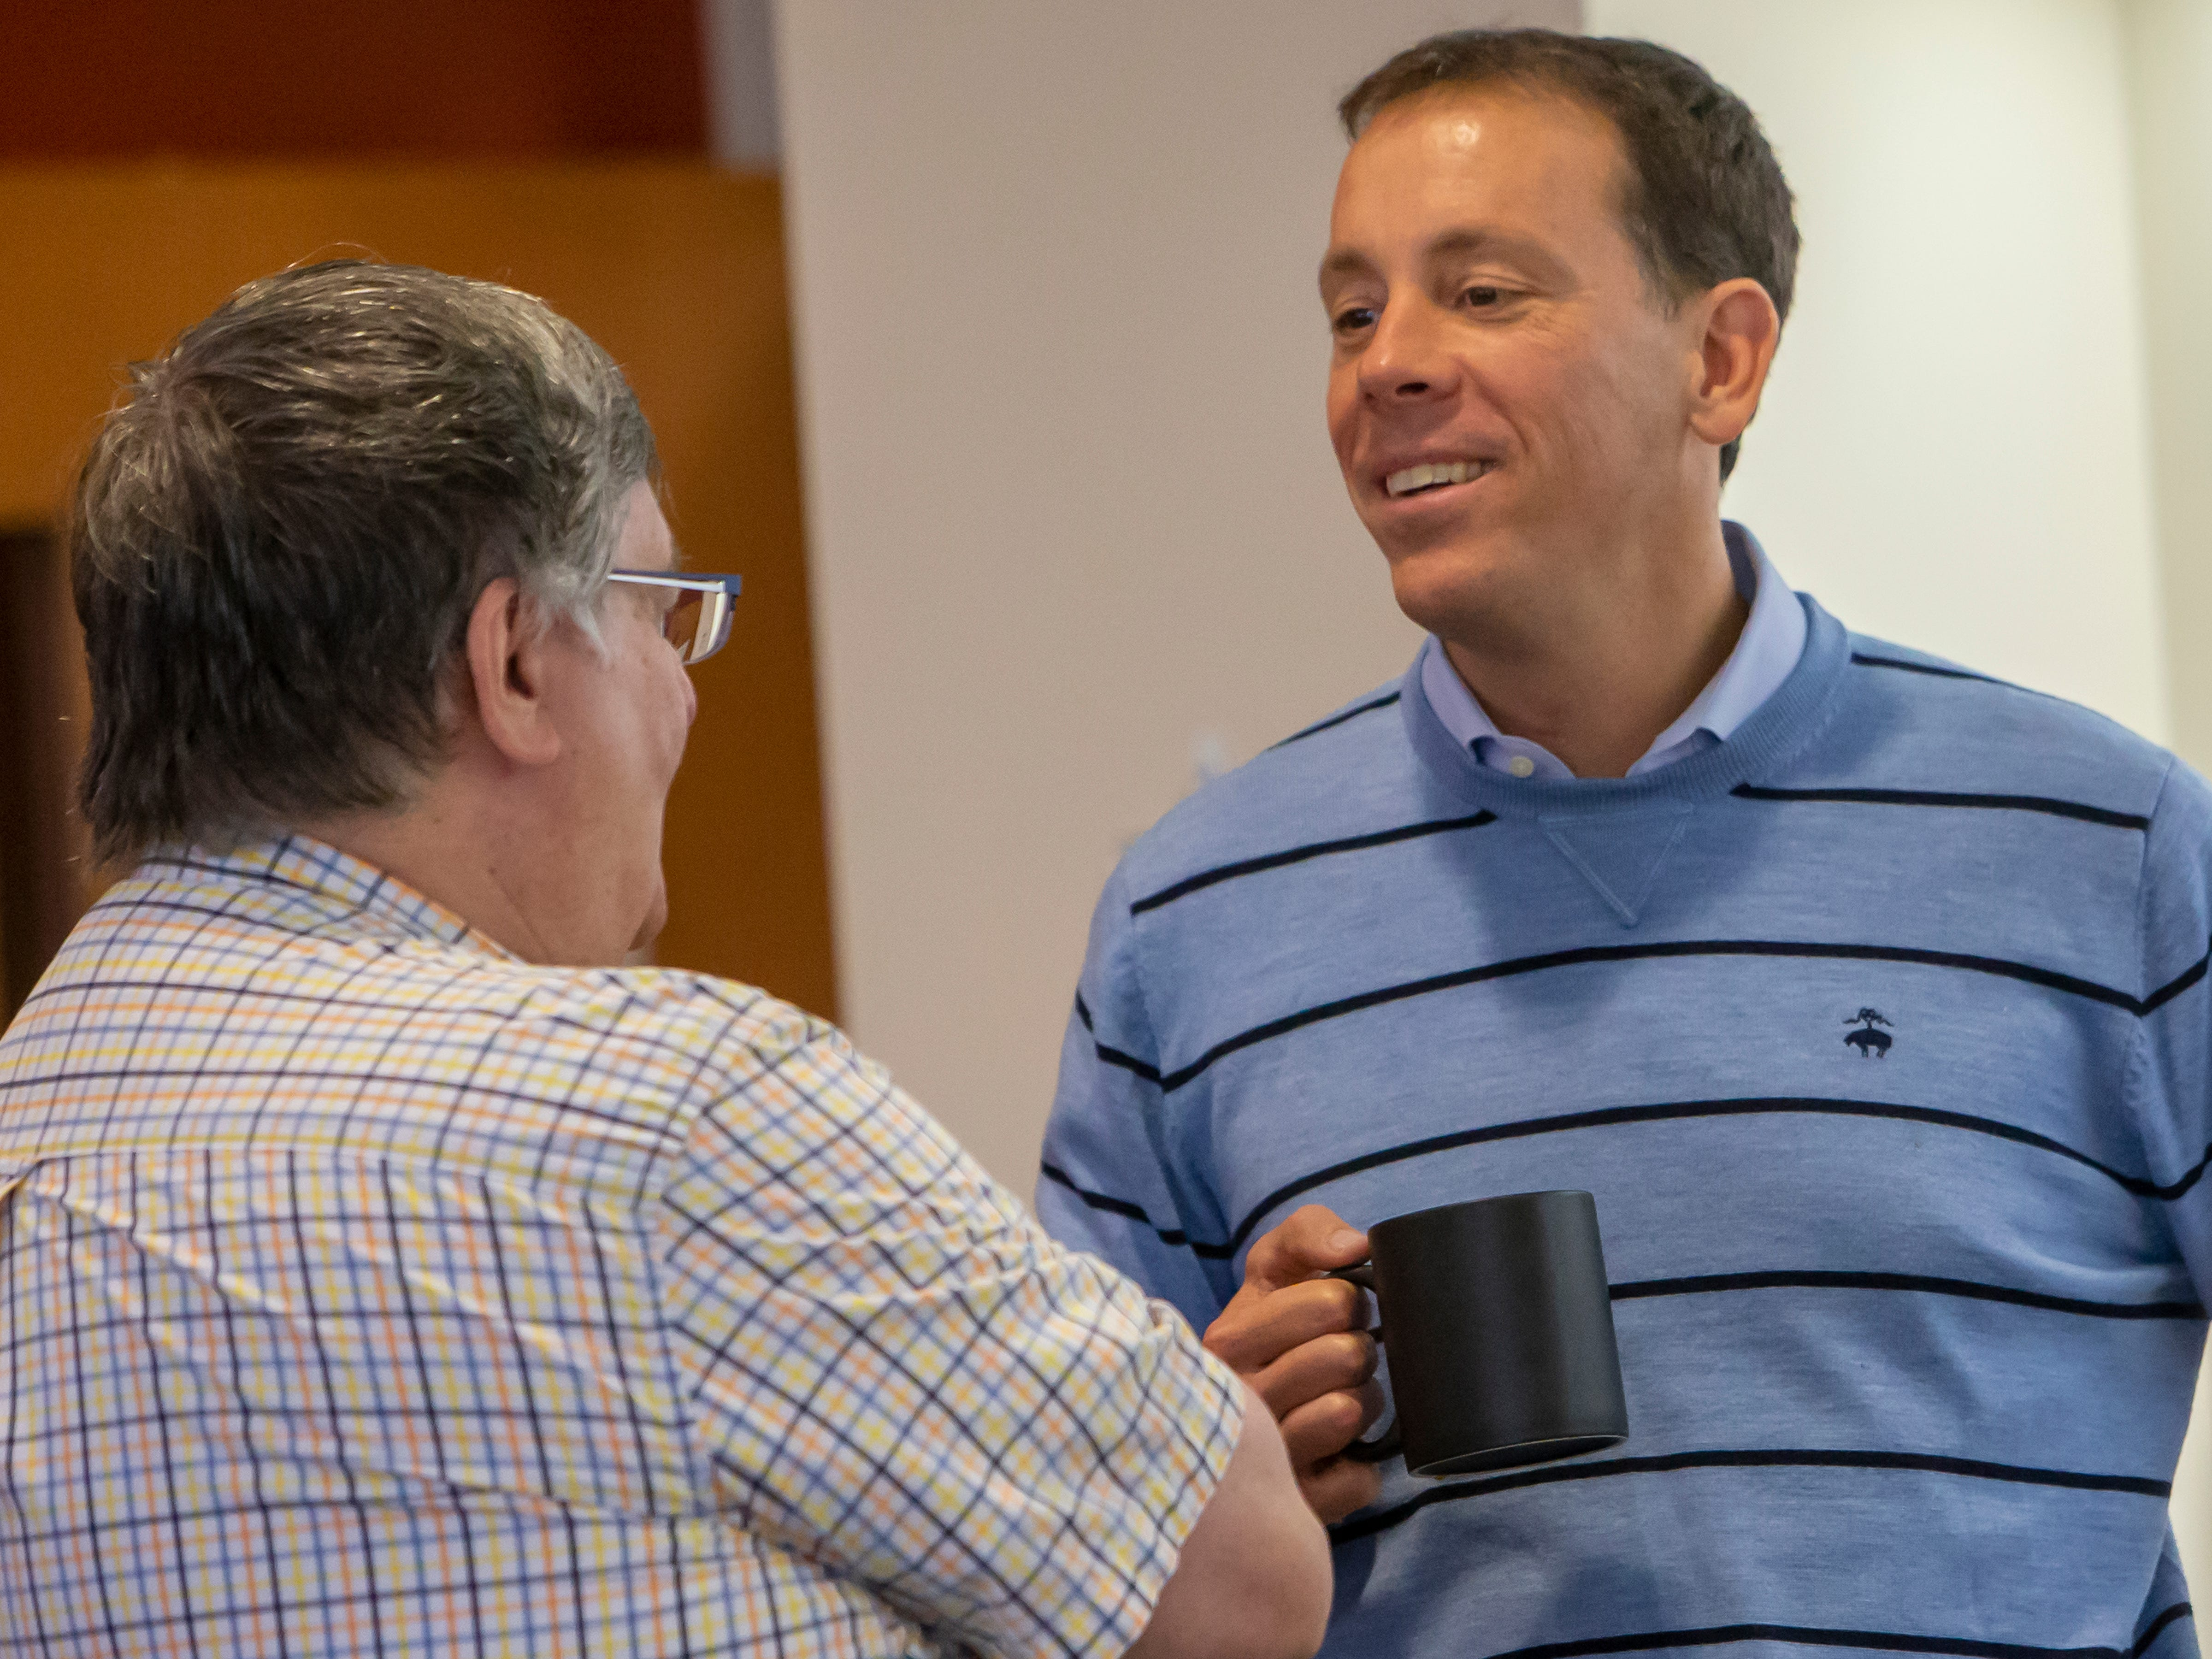 Jim VandeHei, Co-Founder of Politico and Axios, mingles with people as the University of Wisconsin-Oshkosh celebrates fifty-years of journalism during the event held at Sage Hall on Friday, October 19, 2018.